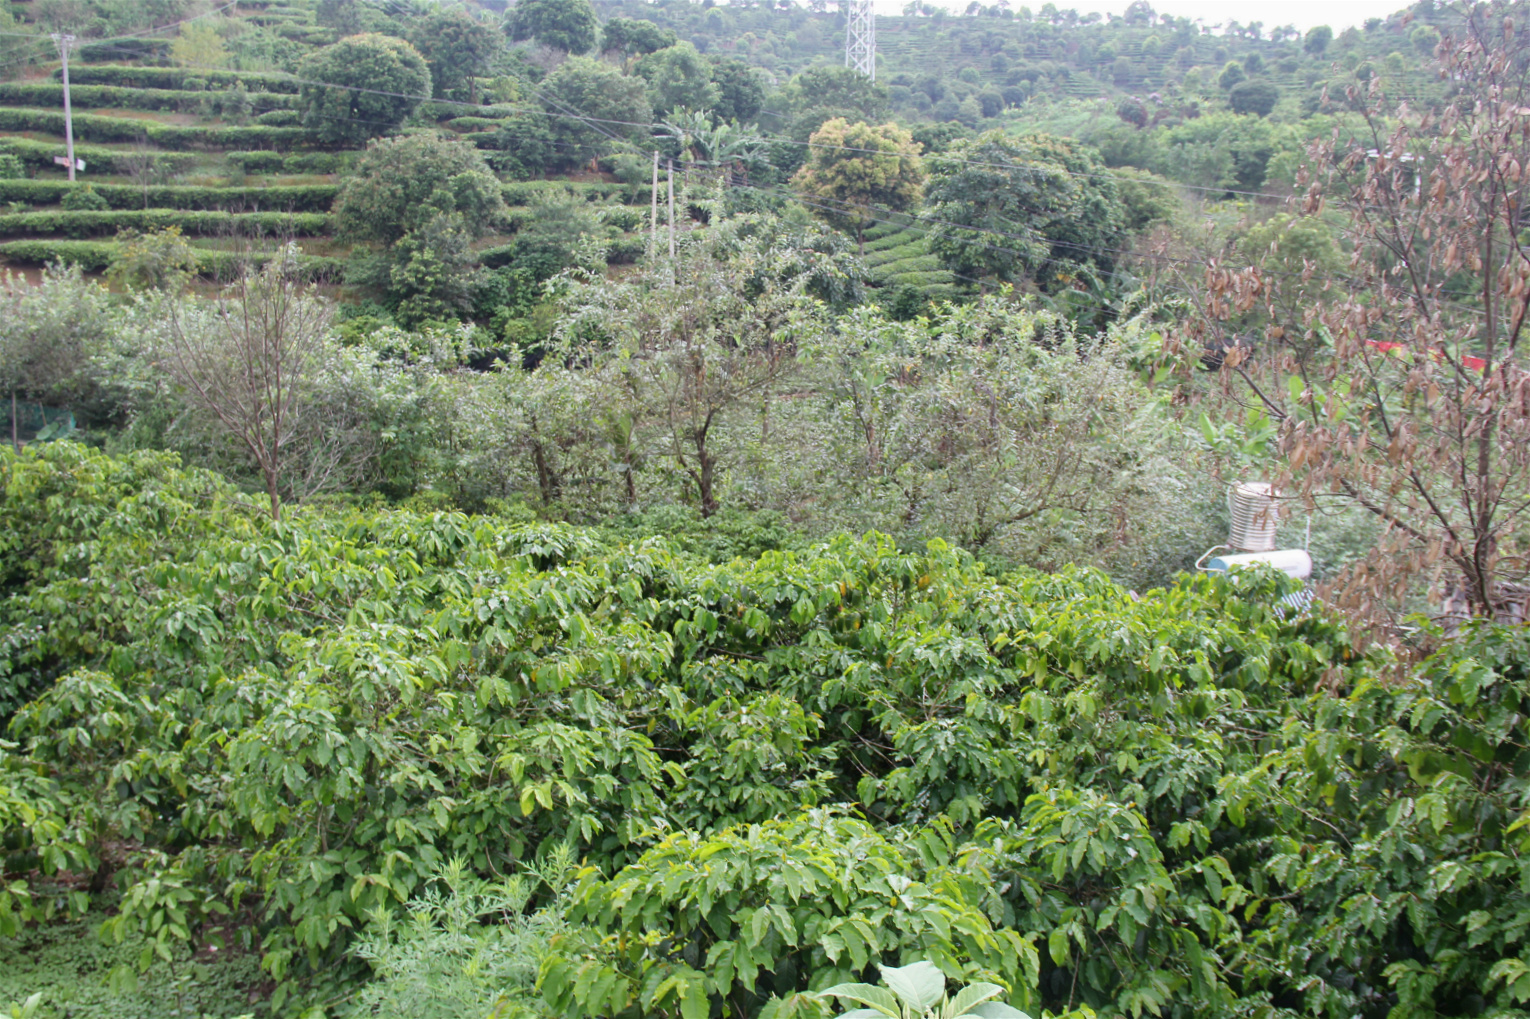 Sun-grown coffee trees in the mountains of Pu'er, Yunnan province, China